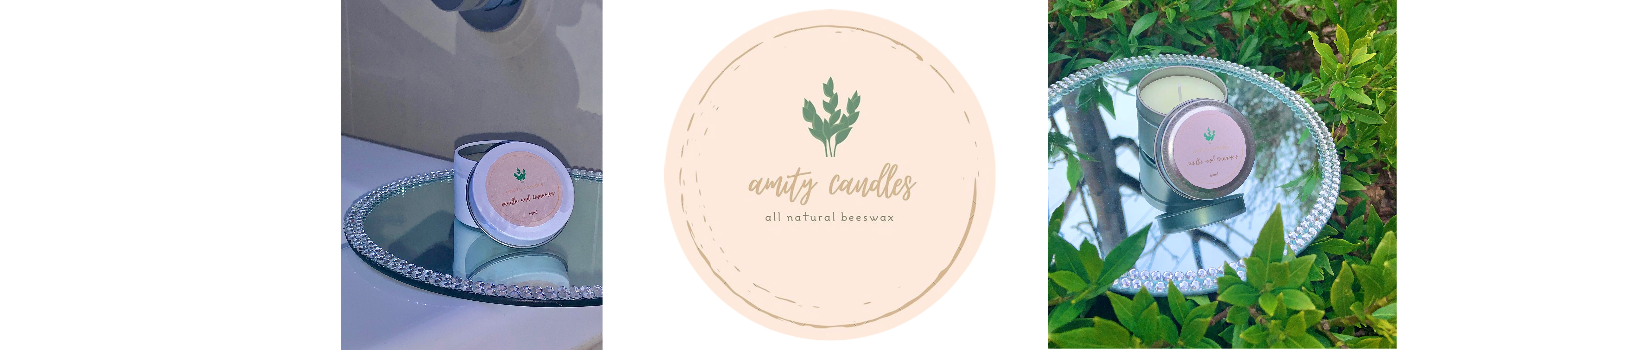 Amity Candles